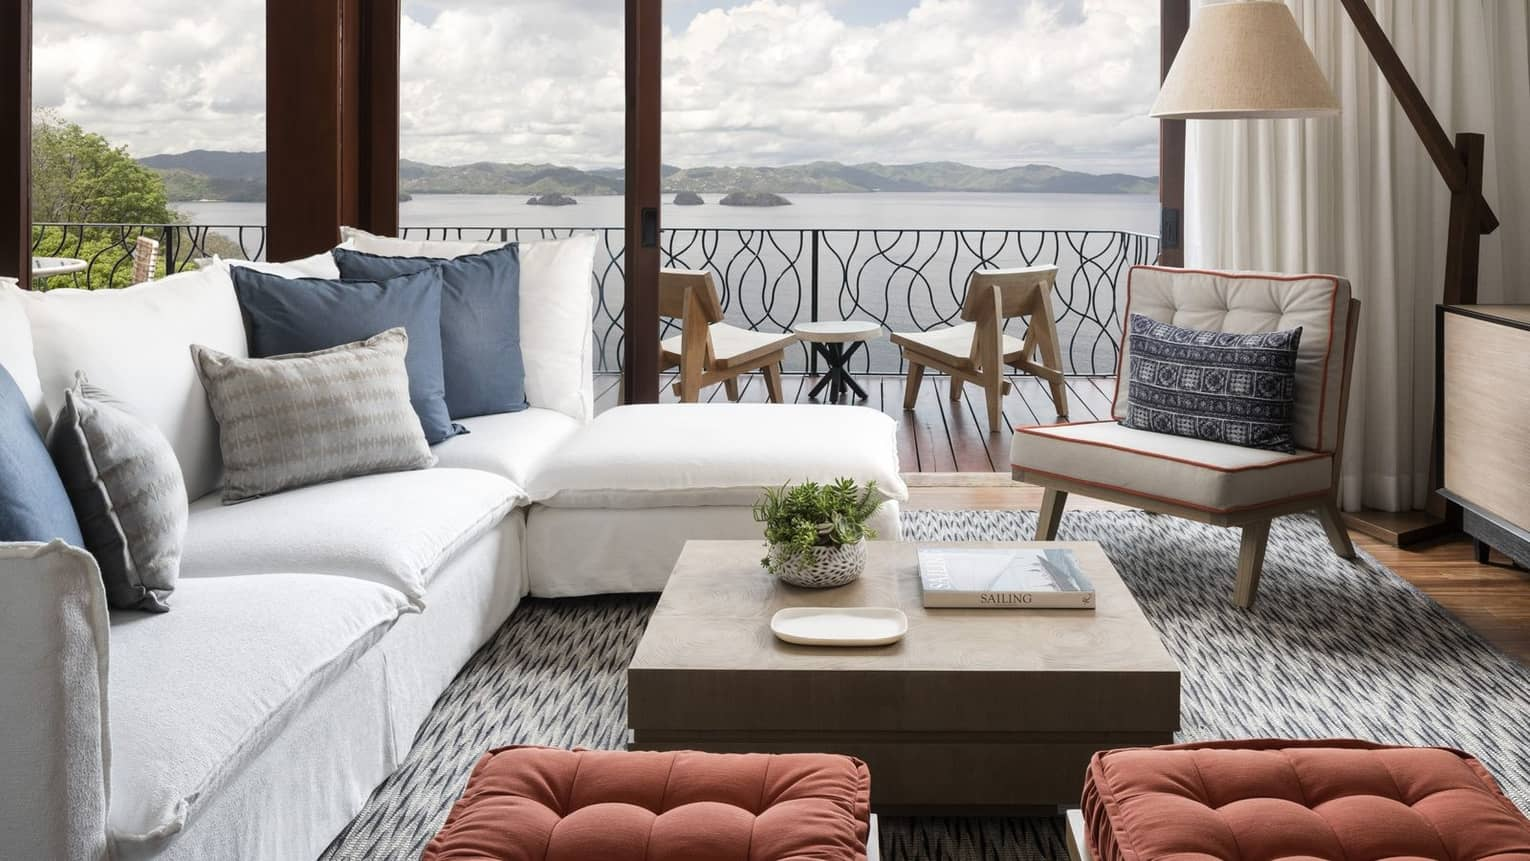 Canopy Premier Plunge Pool Suite L-shaped white sofa in front of picture windows, balcony overlooking ocean